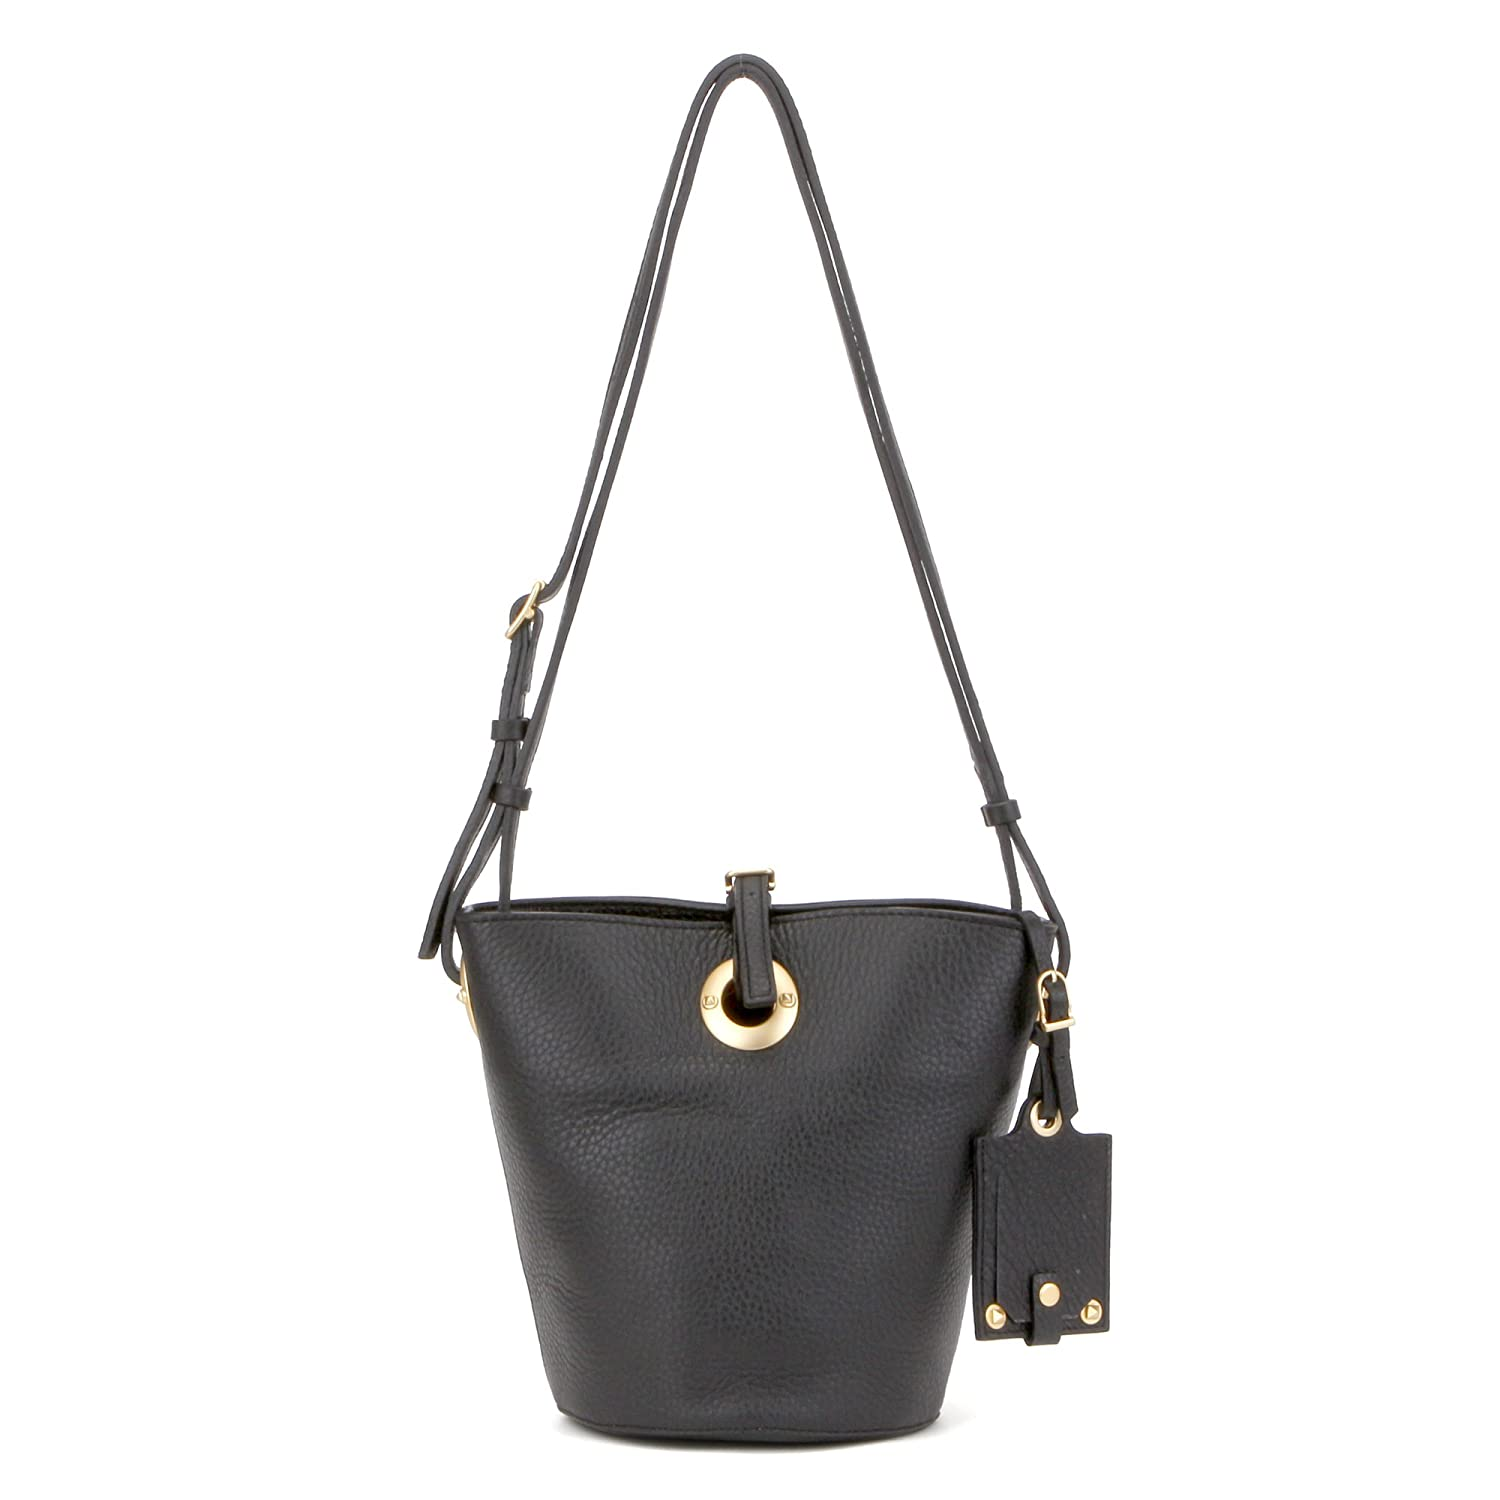 e04ad399bce5 Metrocity Josephine Leather Bag 20628 (Black): Handbags: Amazon.com